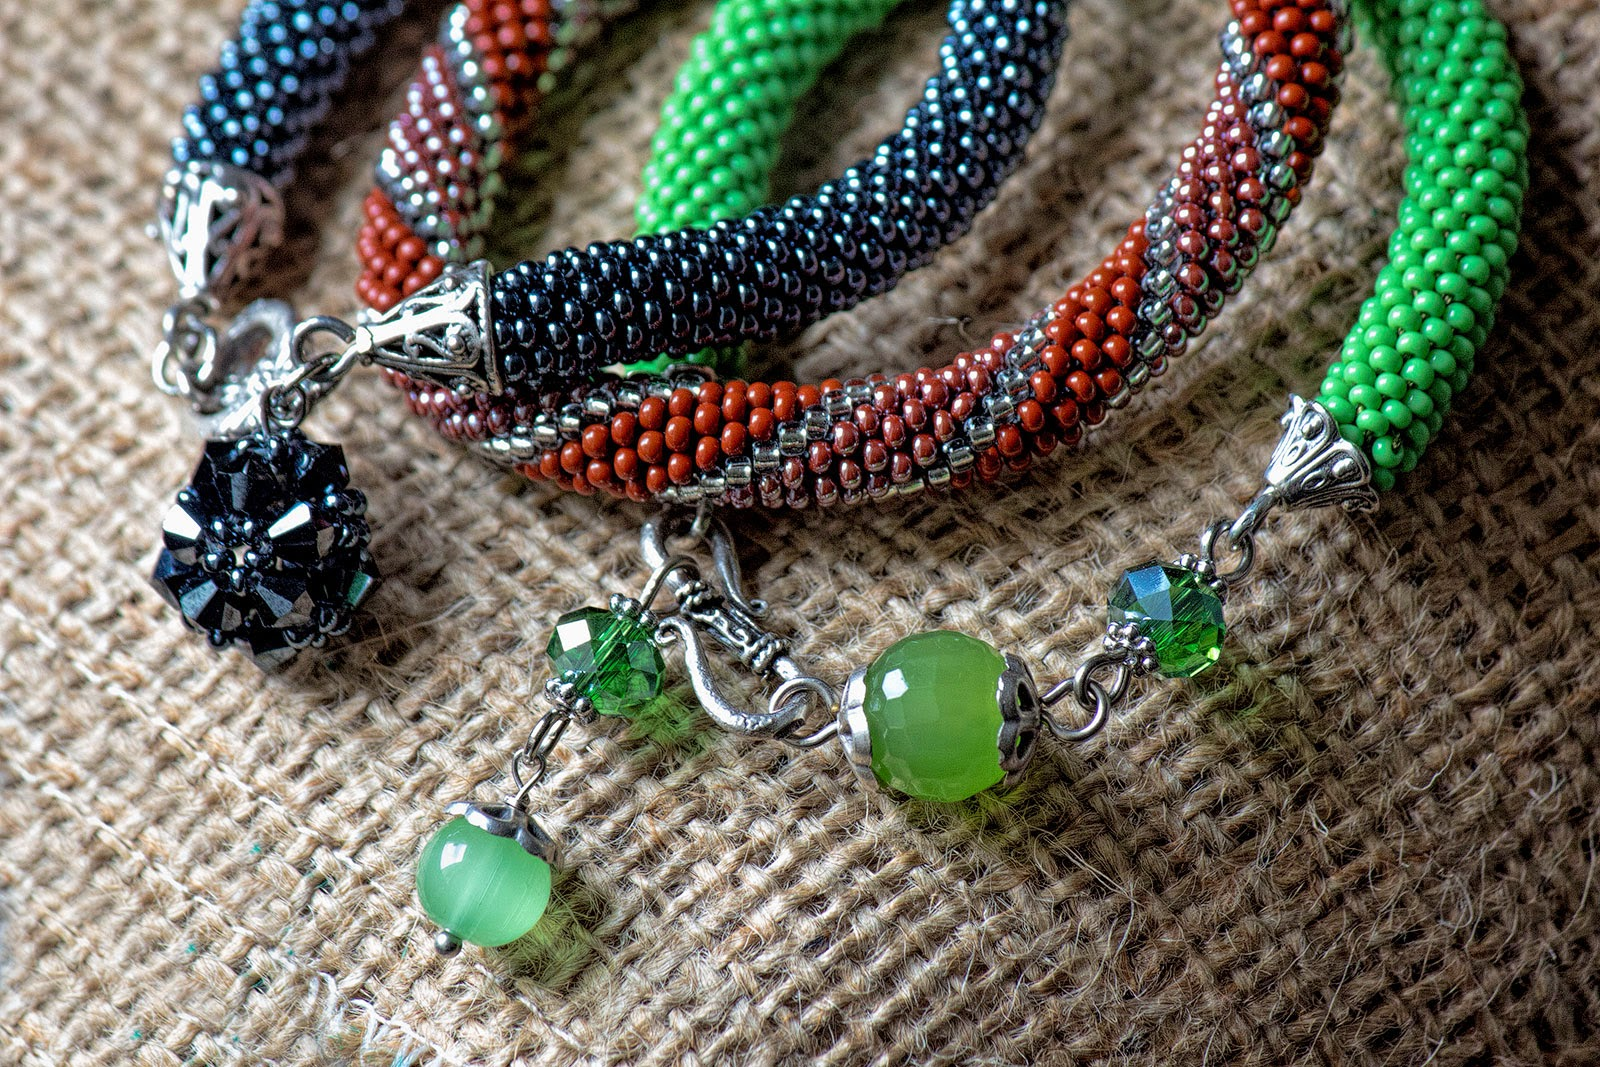 etsy shop beads crochet crocheted rope handmade handcrafted jewellery bracelet jewelry beadwork red green blue charms seed beads czech fashion chic